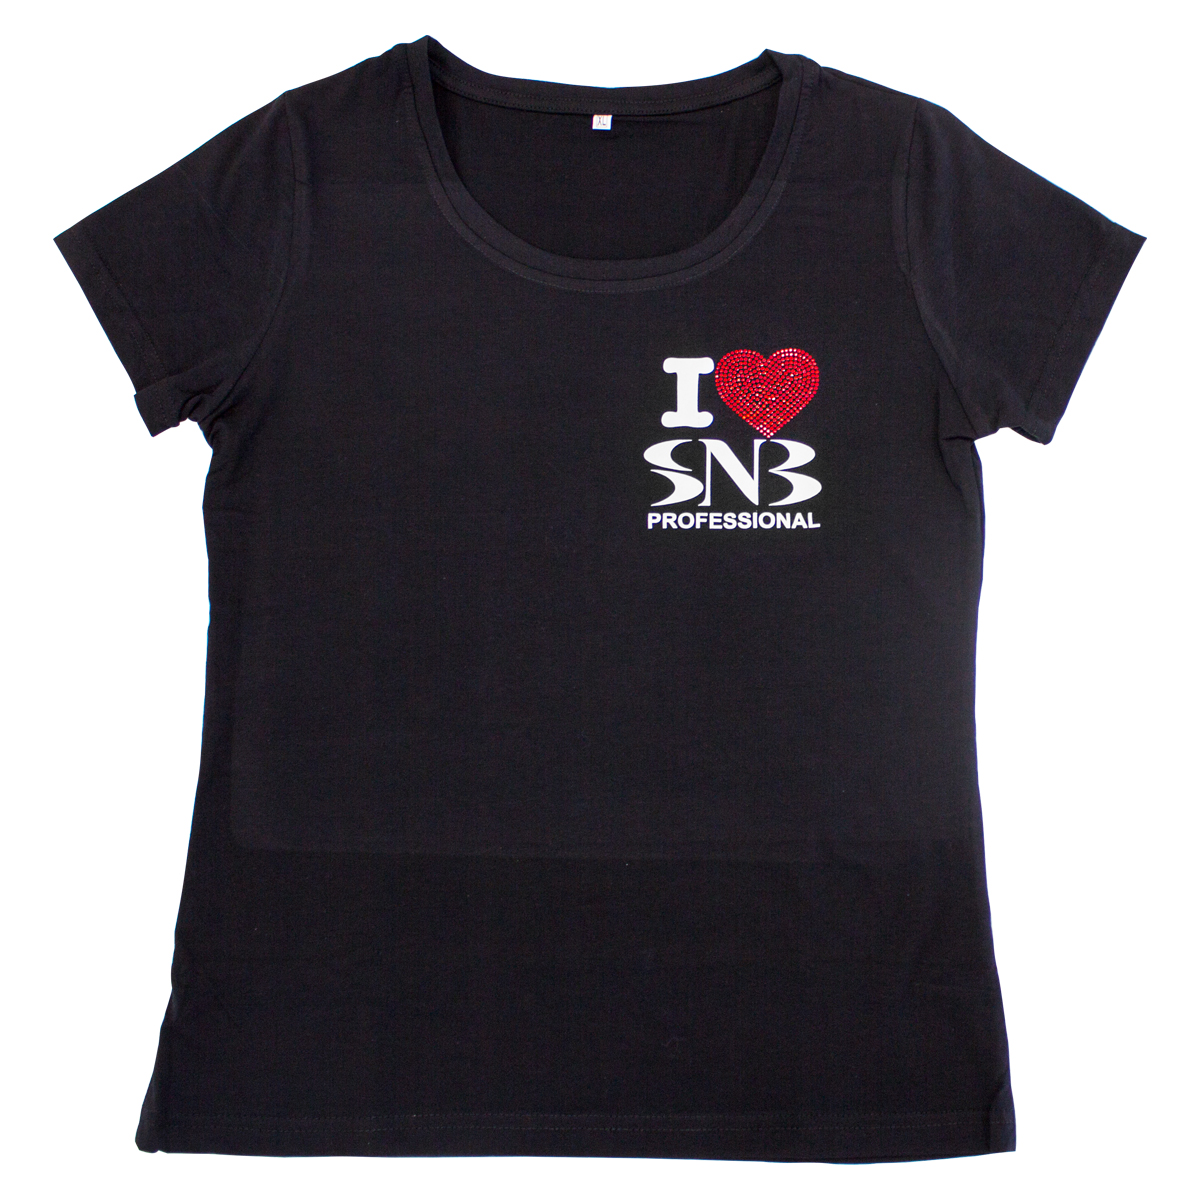 Women's T-shirt I LOVE SNB XL - XXXL